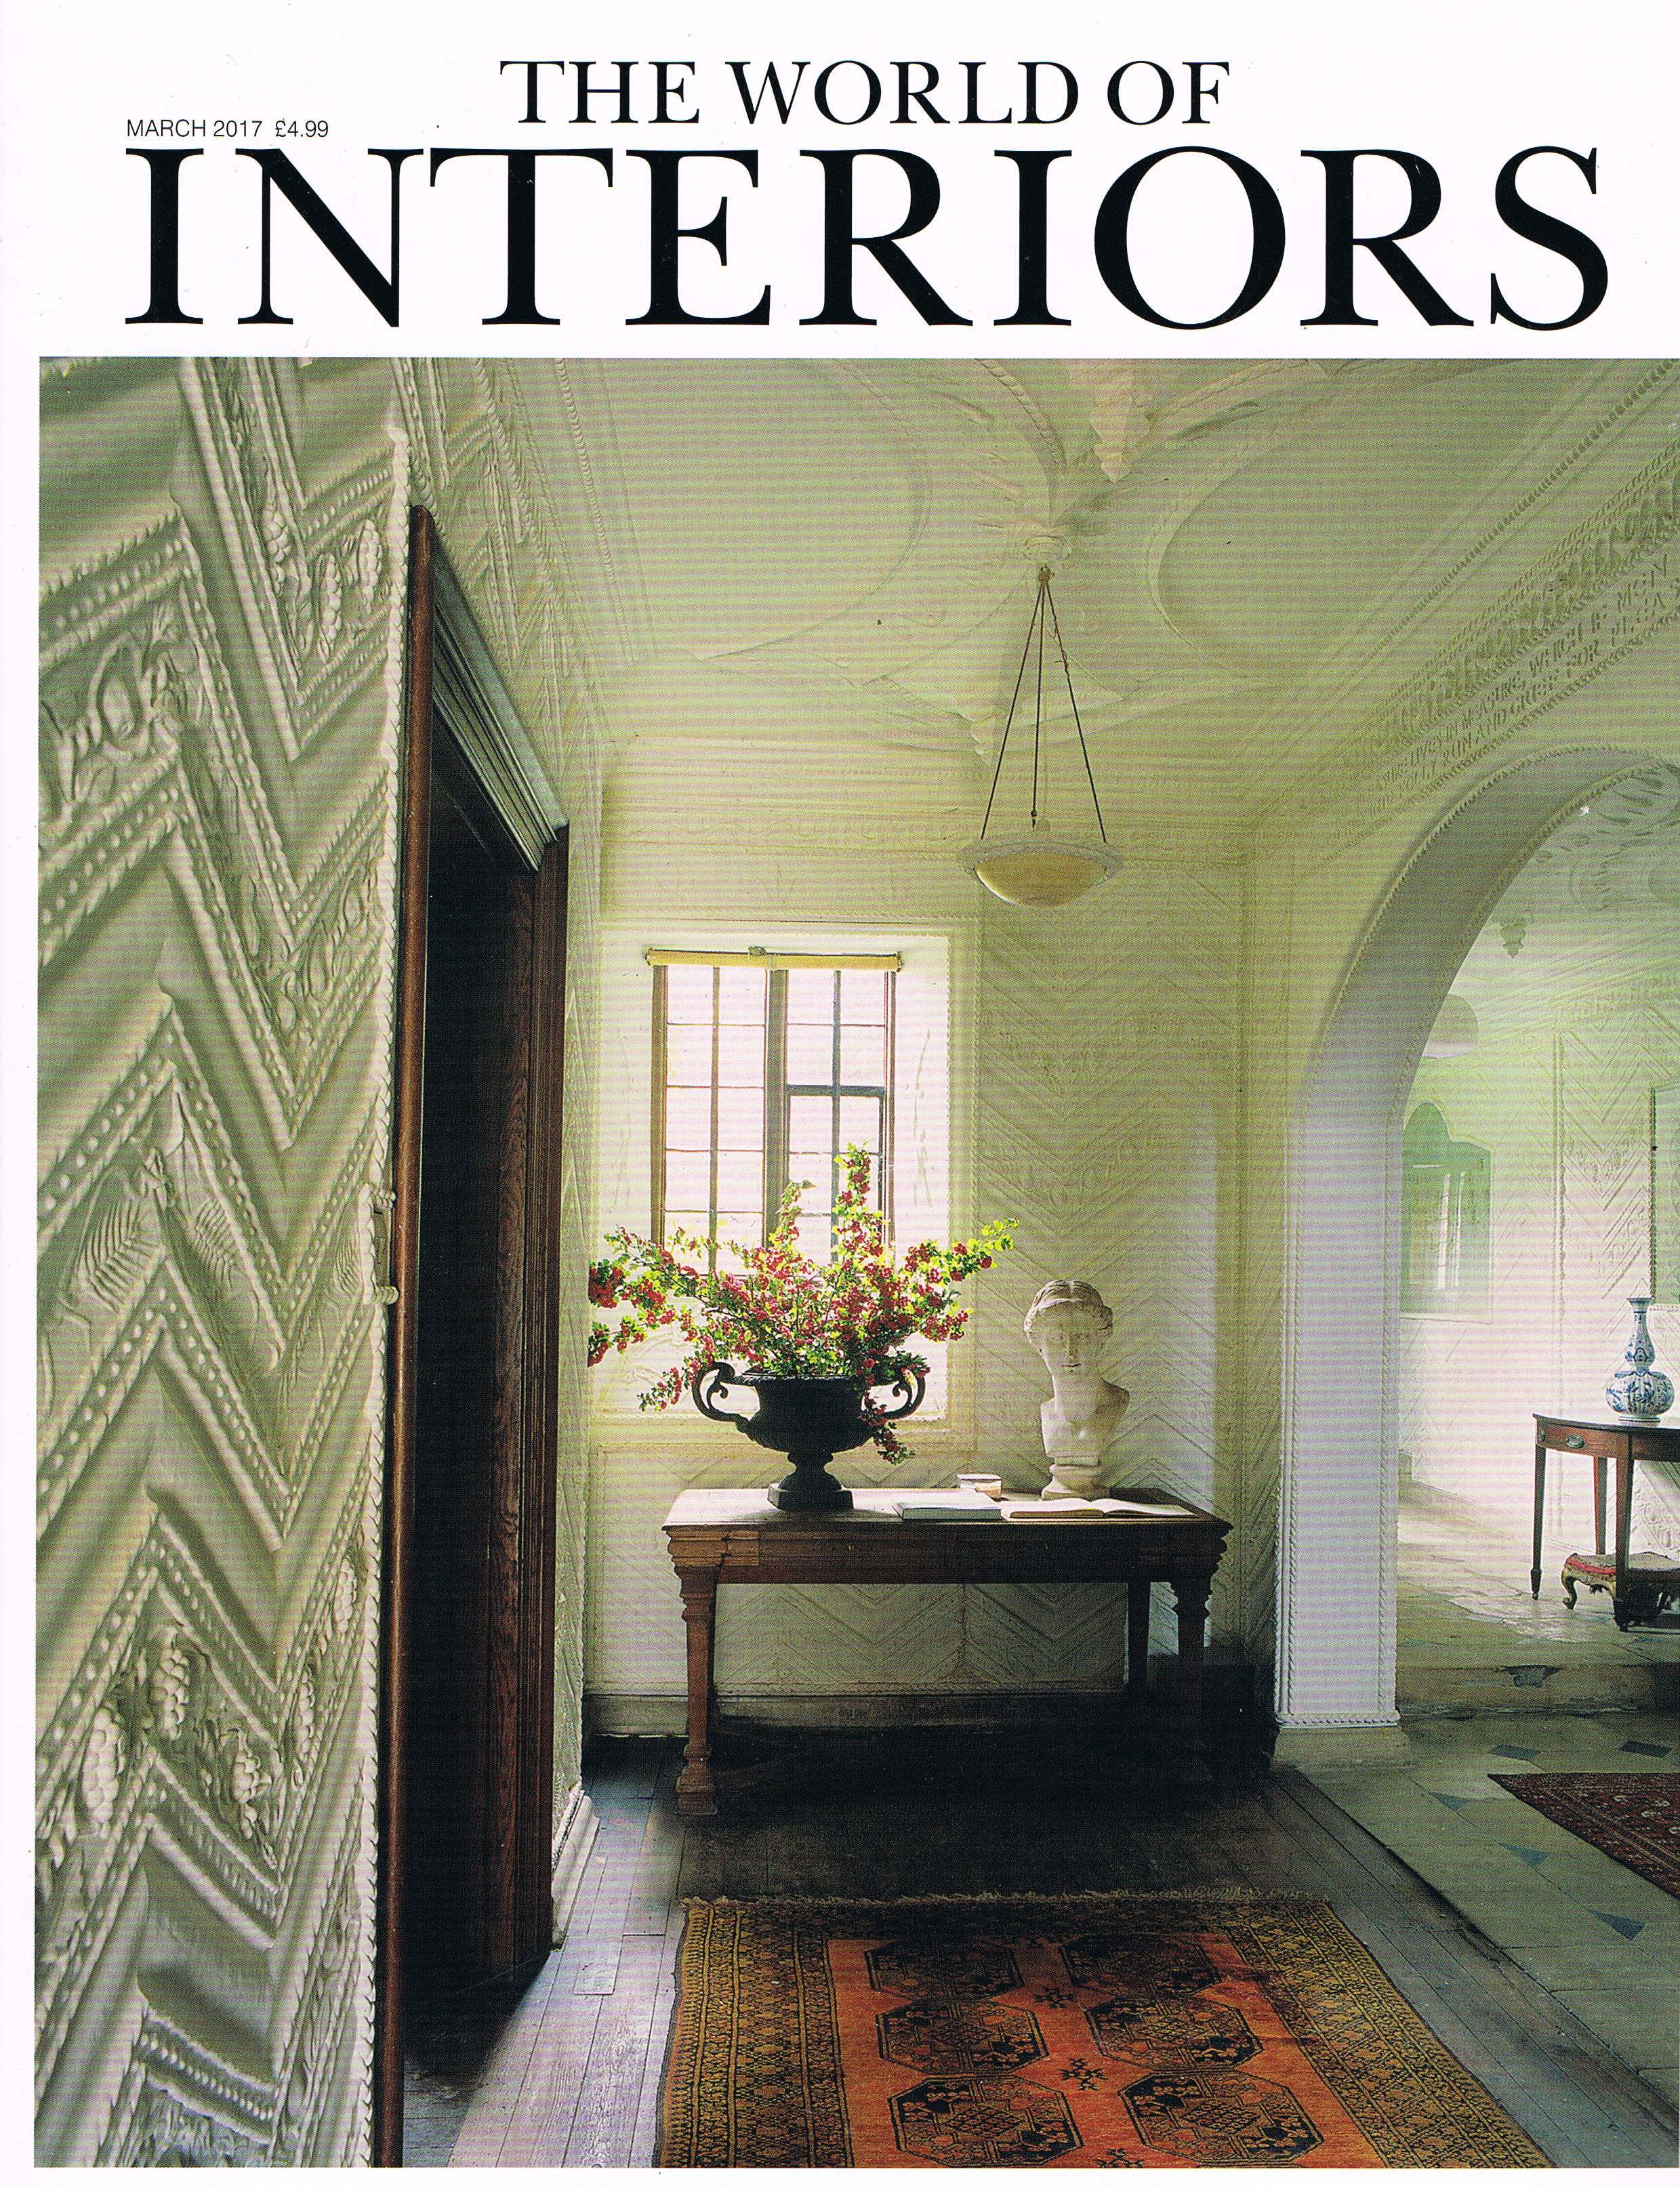 The World of Interiors - March 2017 - Rupert Bevan